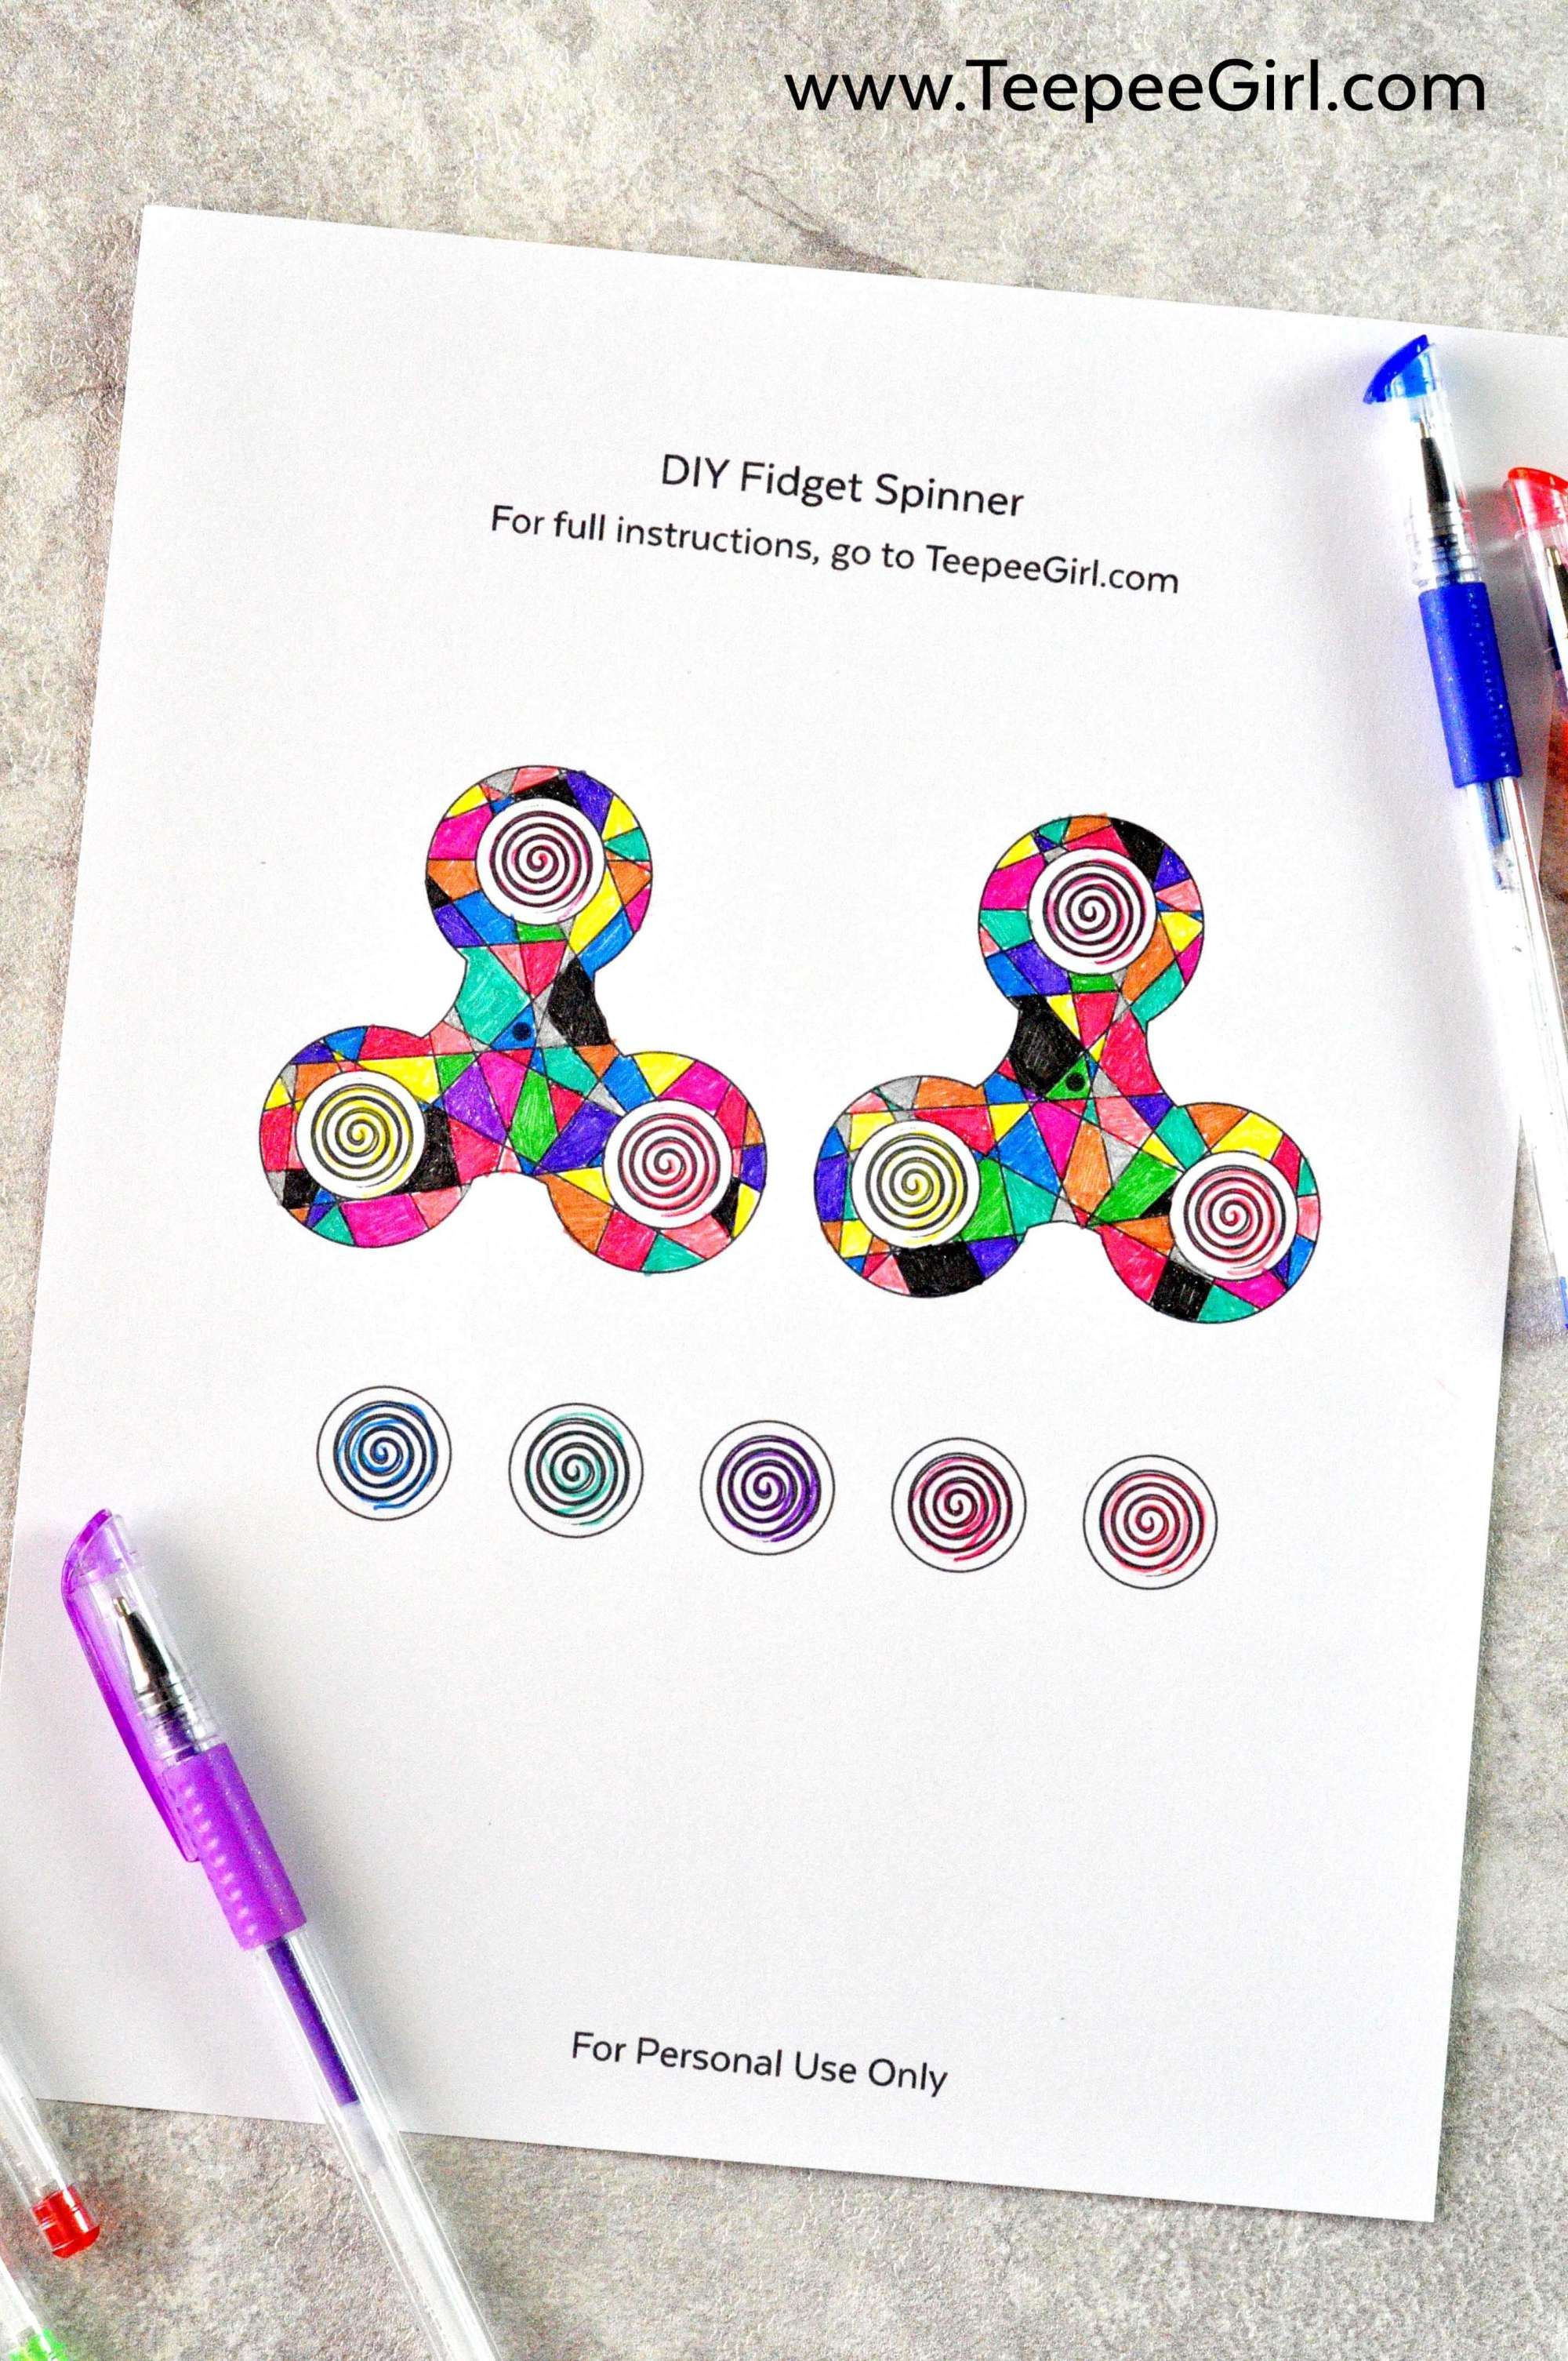 Color And Make Your Own Fidget Spinner This Diy Fidget